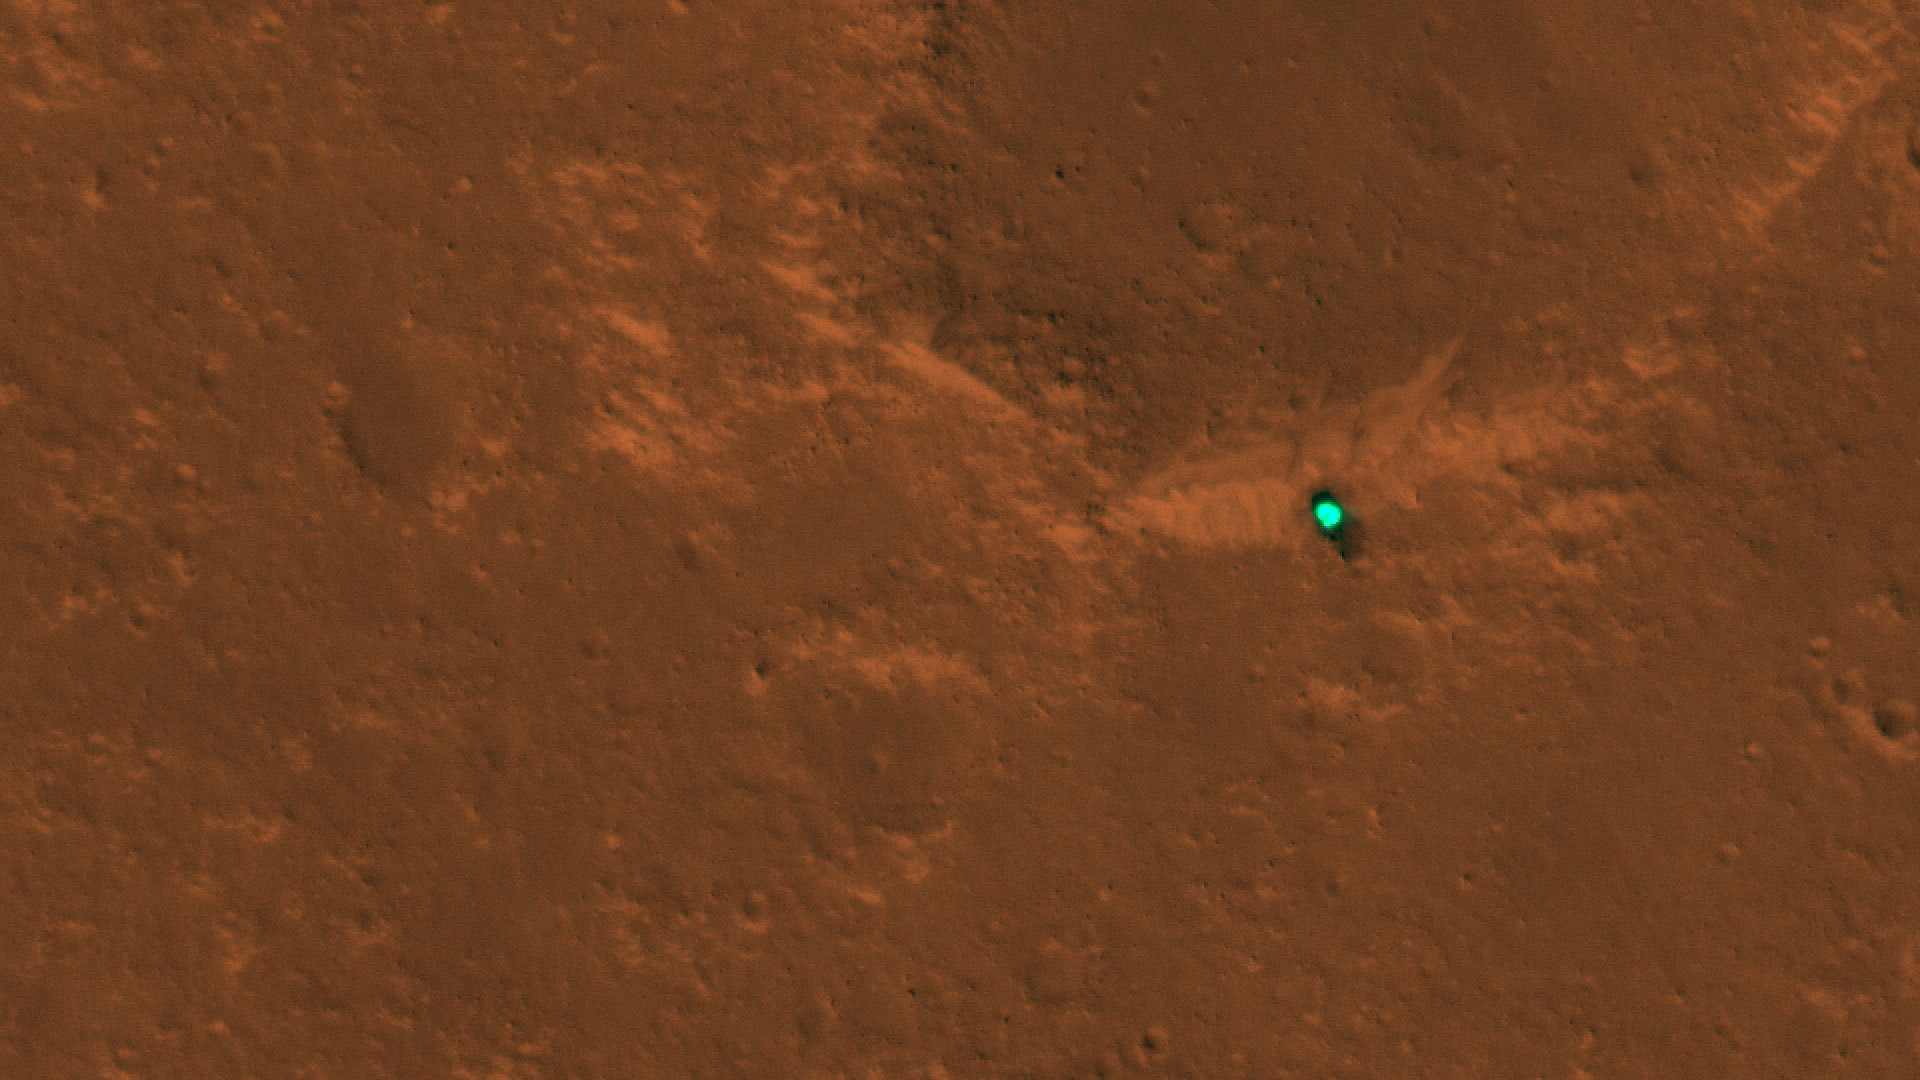 https://static.uahirise.org/images/2018/details/cut/ESP_058005_1845-shield-full-res.jpg